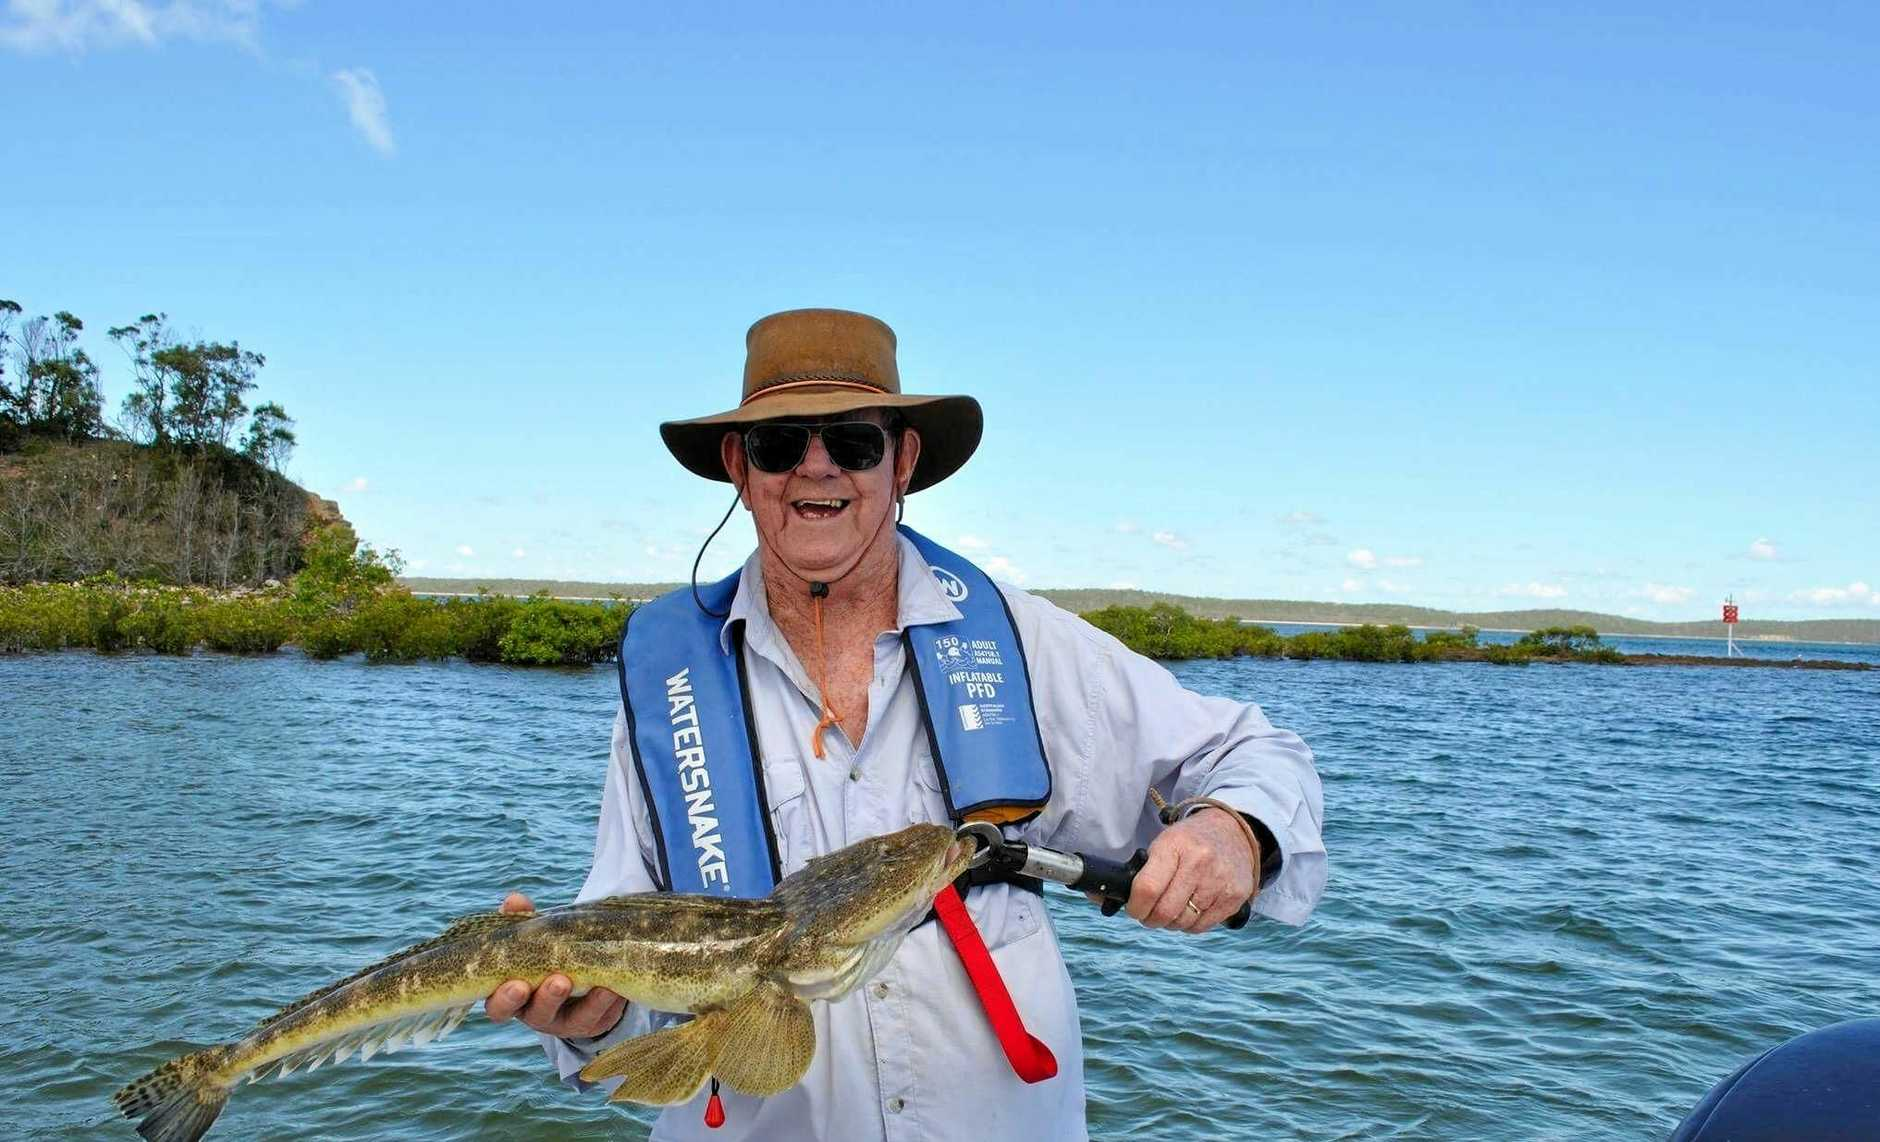 3. We received the next photo via email. Bryce Nelmes caught and released this 73cm flathead out of Hervey Bay on Tuesday.